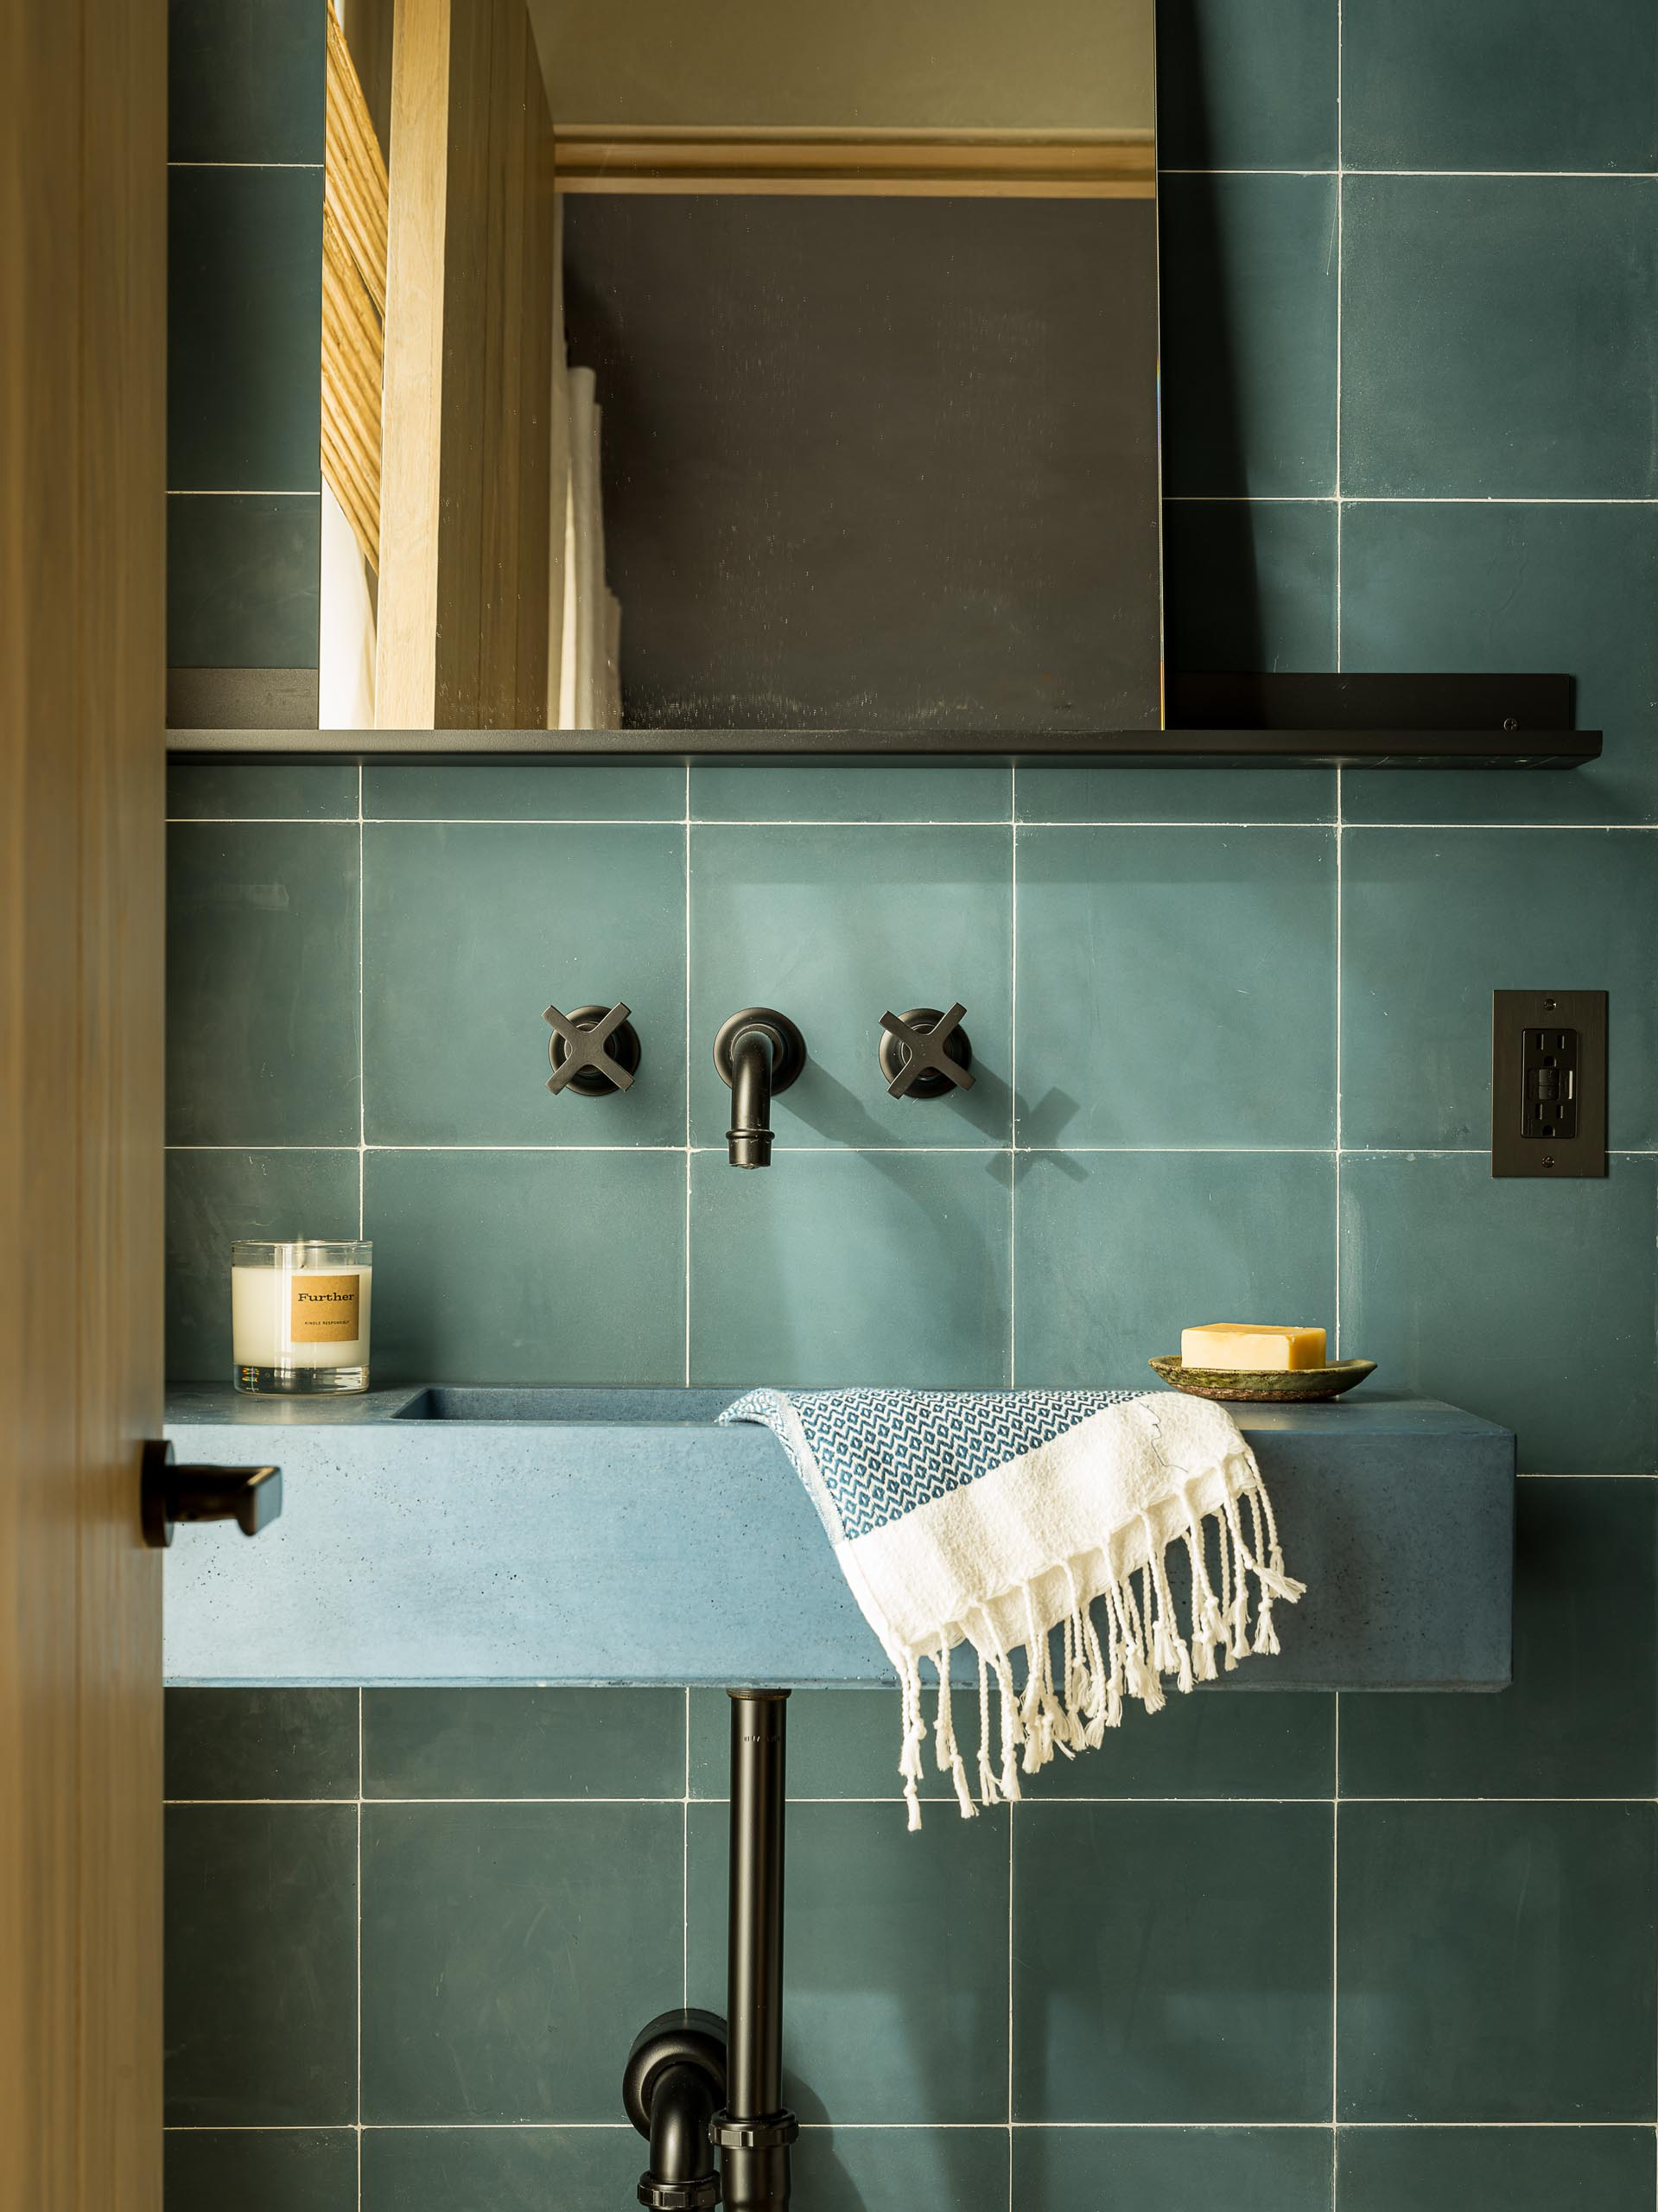 A contemporary blue-green bathroom with square tiles, a blue sink, and black hardware.